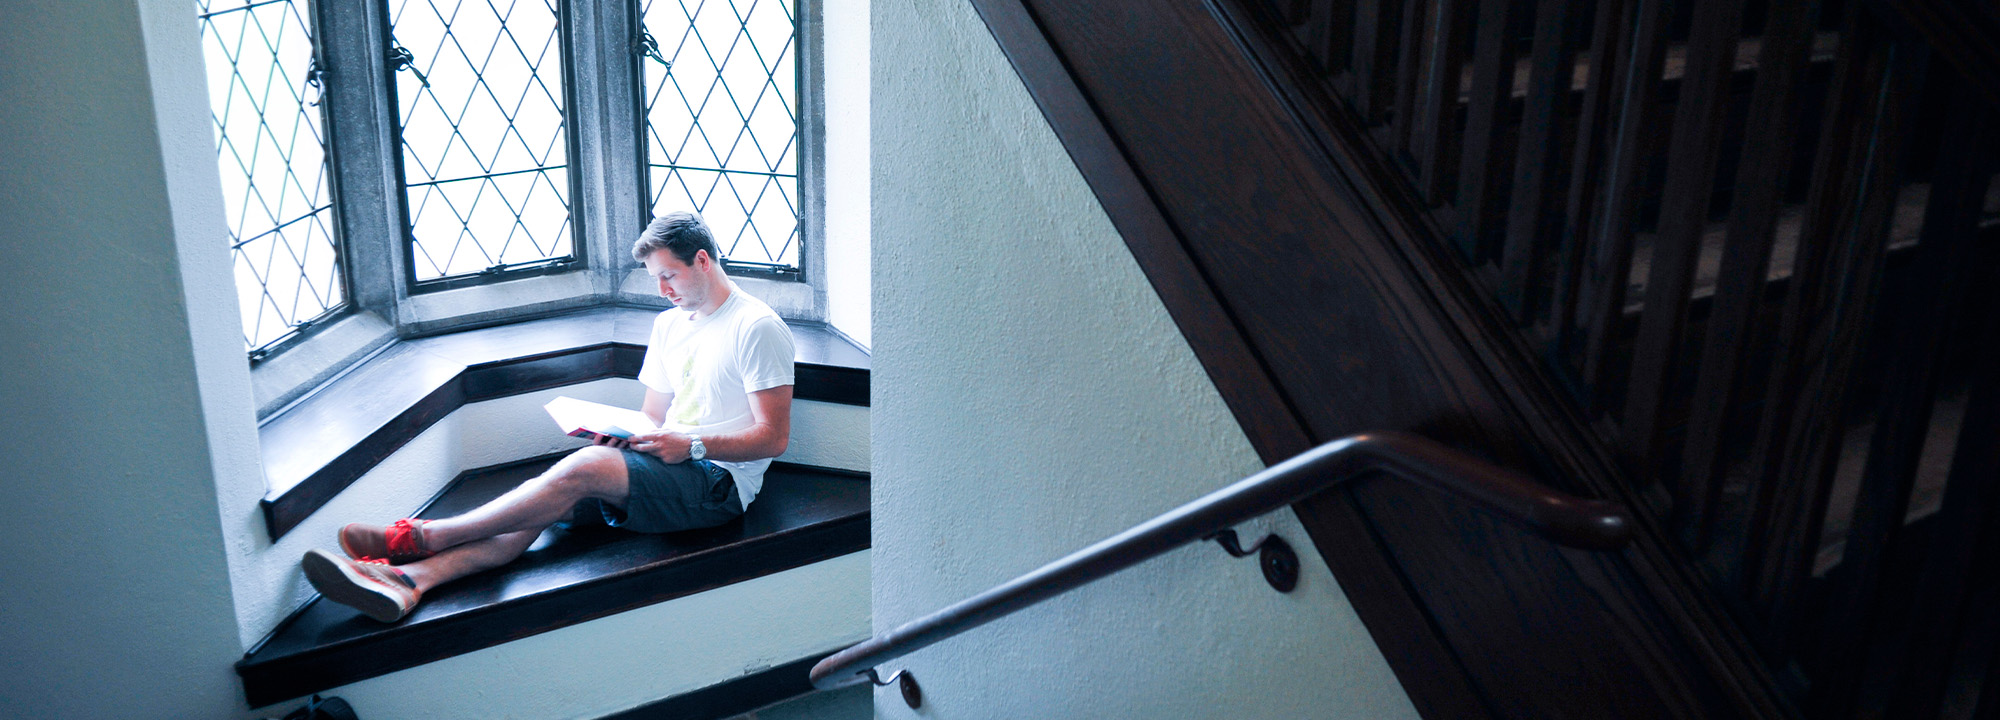 Student reading in a stairwell